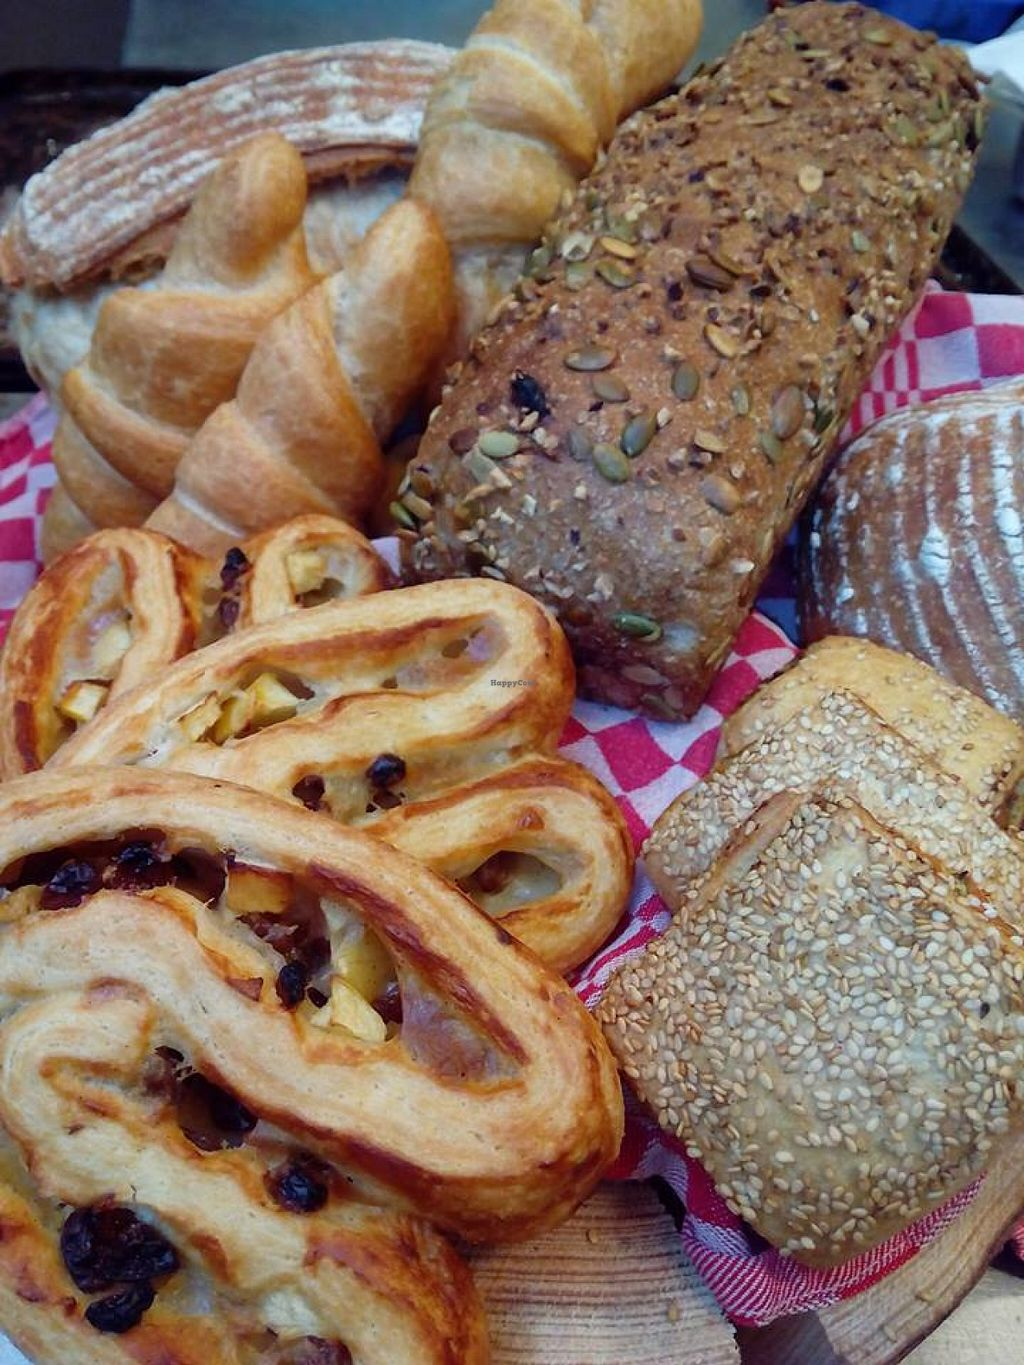 """Photo of Het Zaanse Bakkertje  by <a href=""""/members/profile/Cornelie"""">Cornelie</a> <br/>Vegan baked goods <br/> March 15, 2016  - <a href='/contact/abuse/image/70817/140038'>Report</a>"""